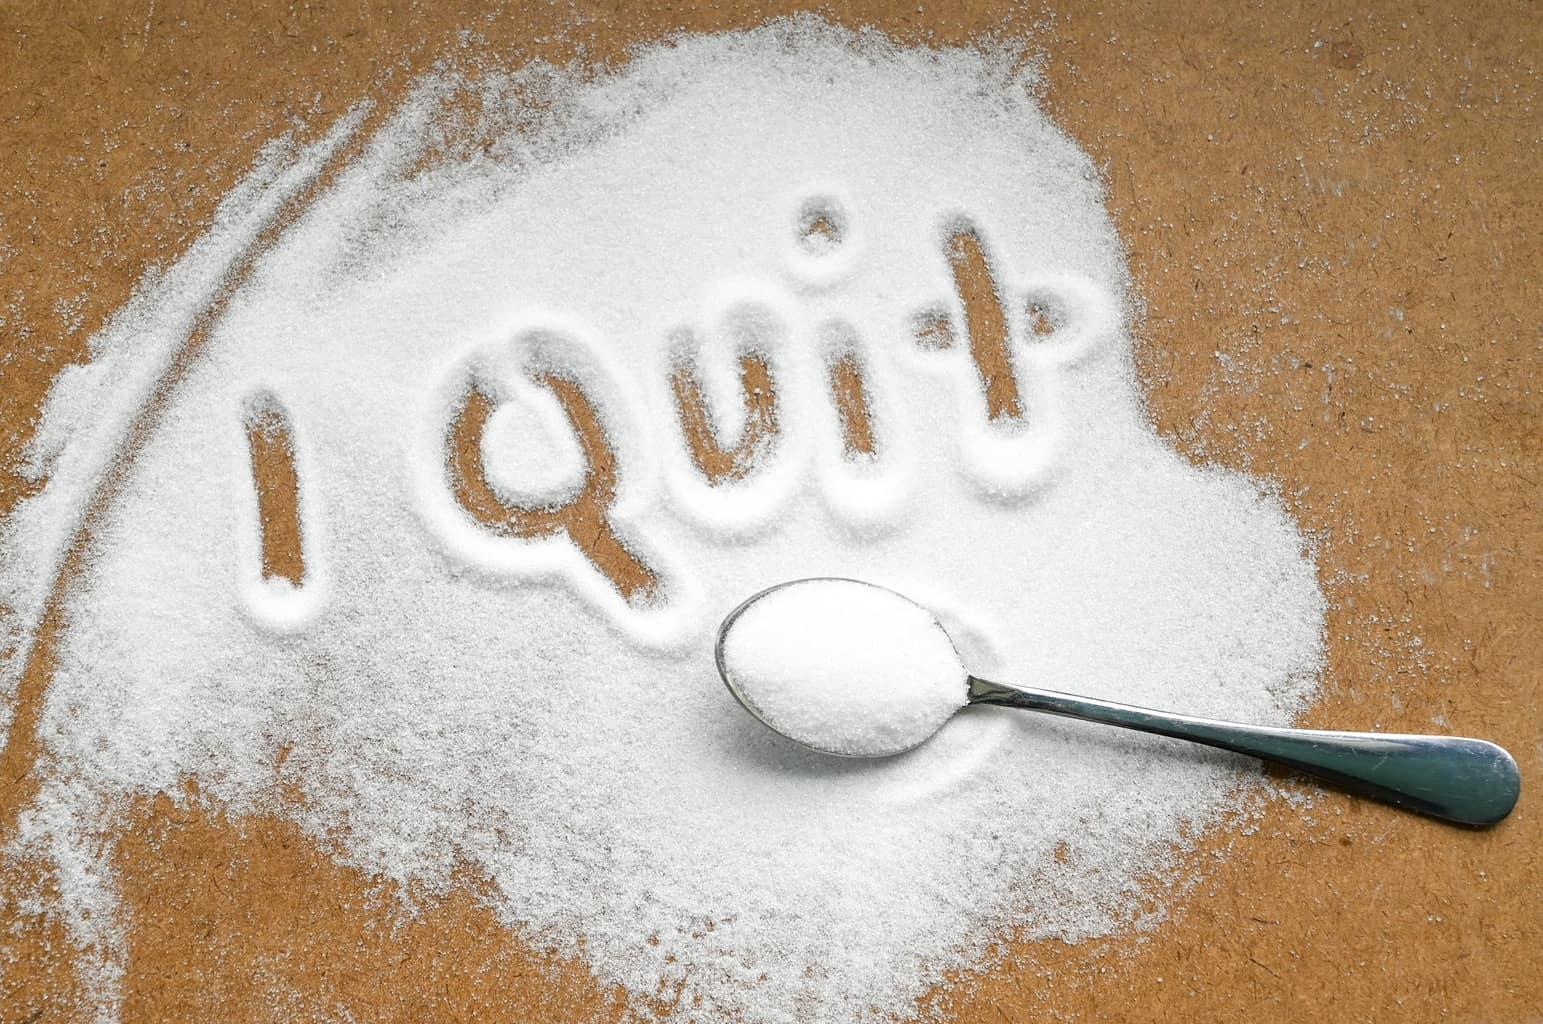 I quit written in sugar denoting the need to quit sugar